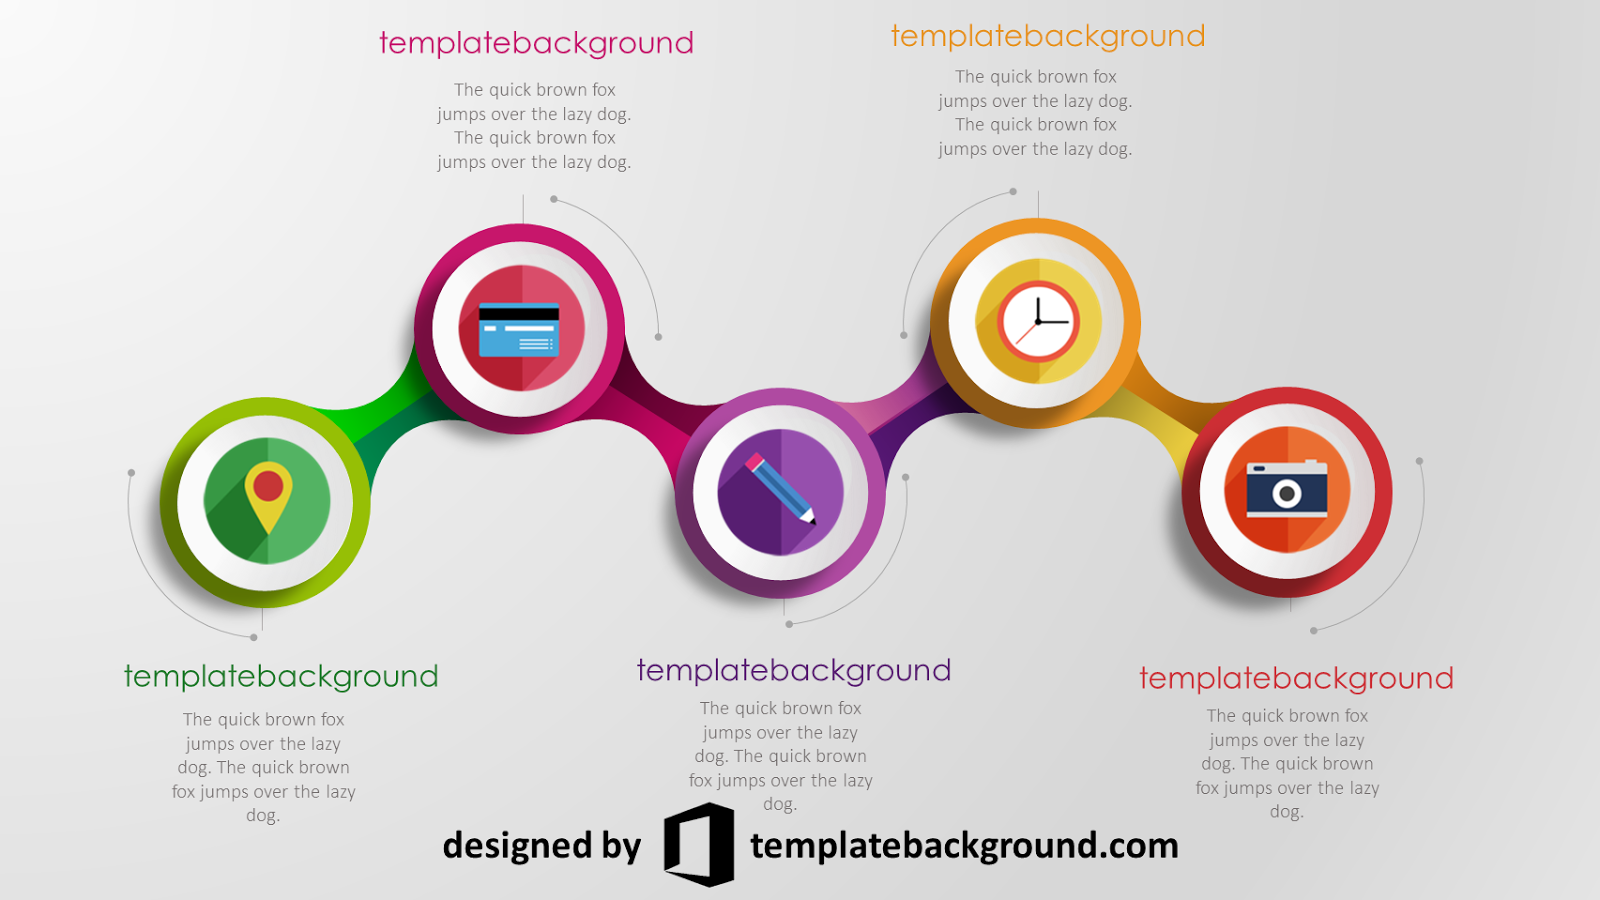 Free hd powerpoint templates idealstalist free hd powerpoint templates toneelgroepblik Images